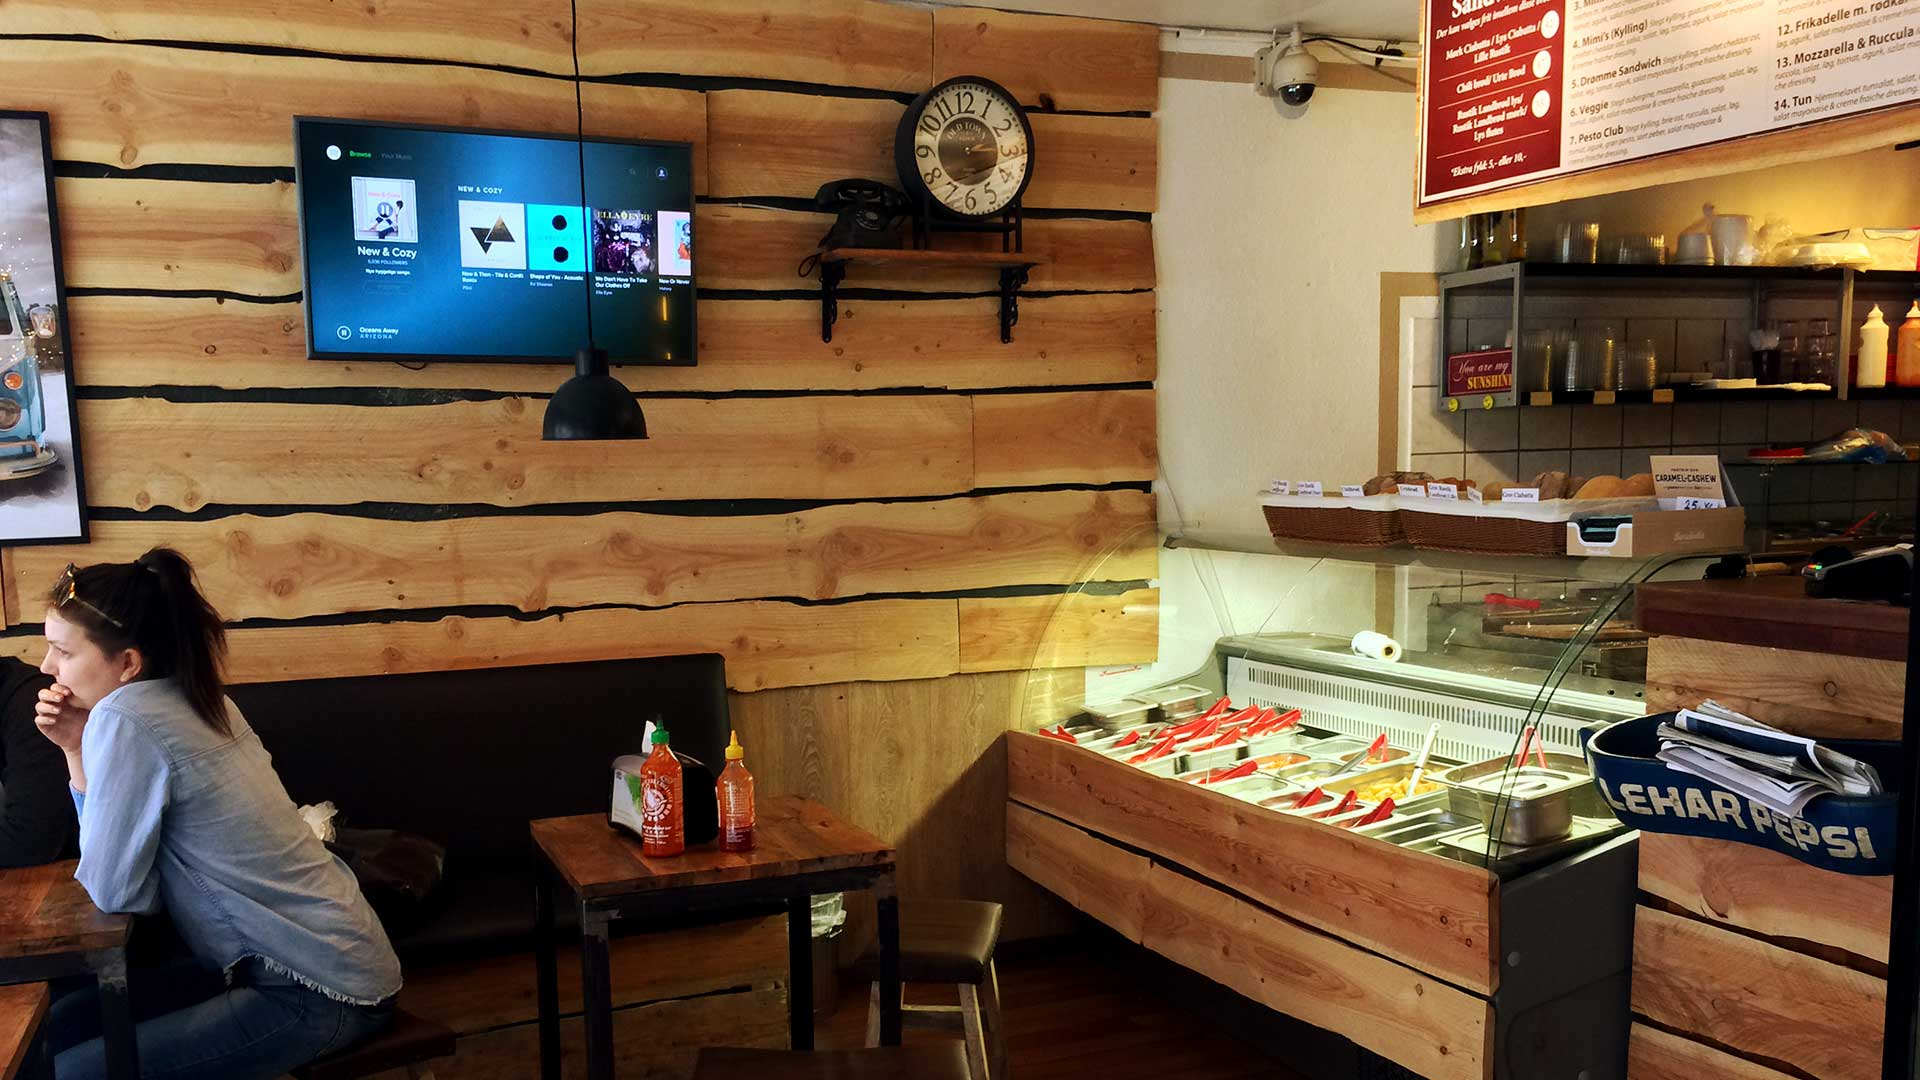 A photo of the inside of Sunshine Sandwich bar